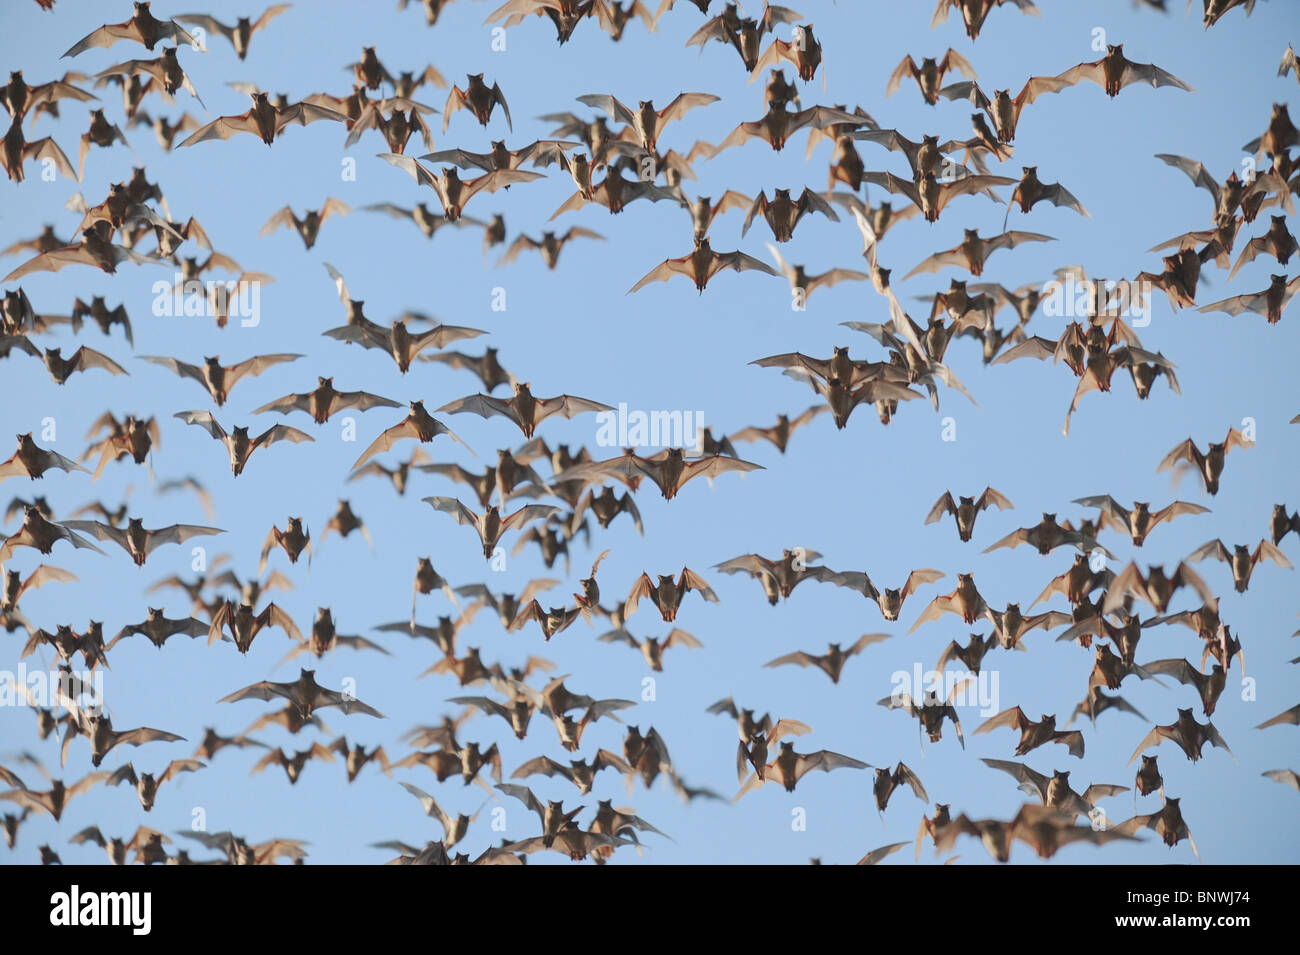 Mexican Free-tailed Bat (Tadarida brasiliensis), swarm in flight, Bracken Cave, San Antonio, Hill Country, Central - Stock Image